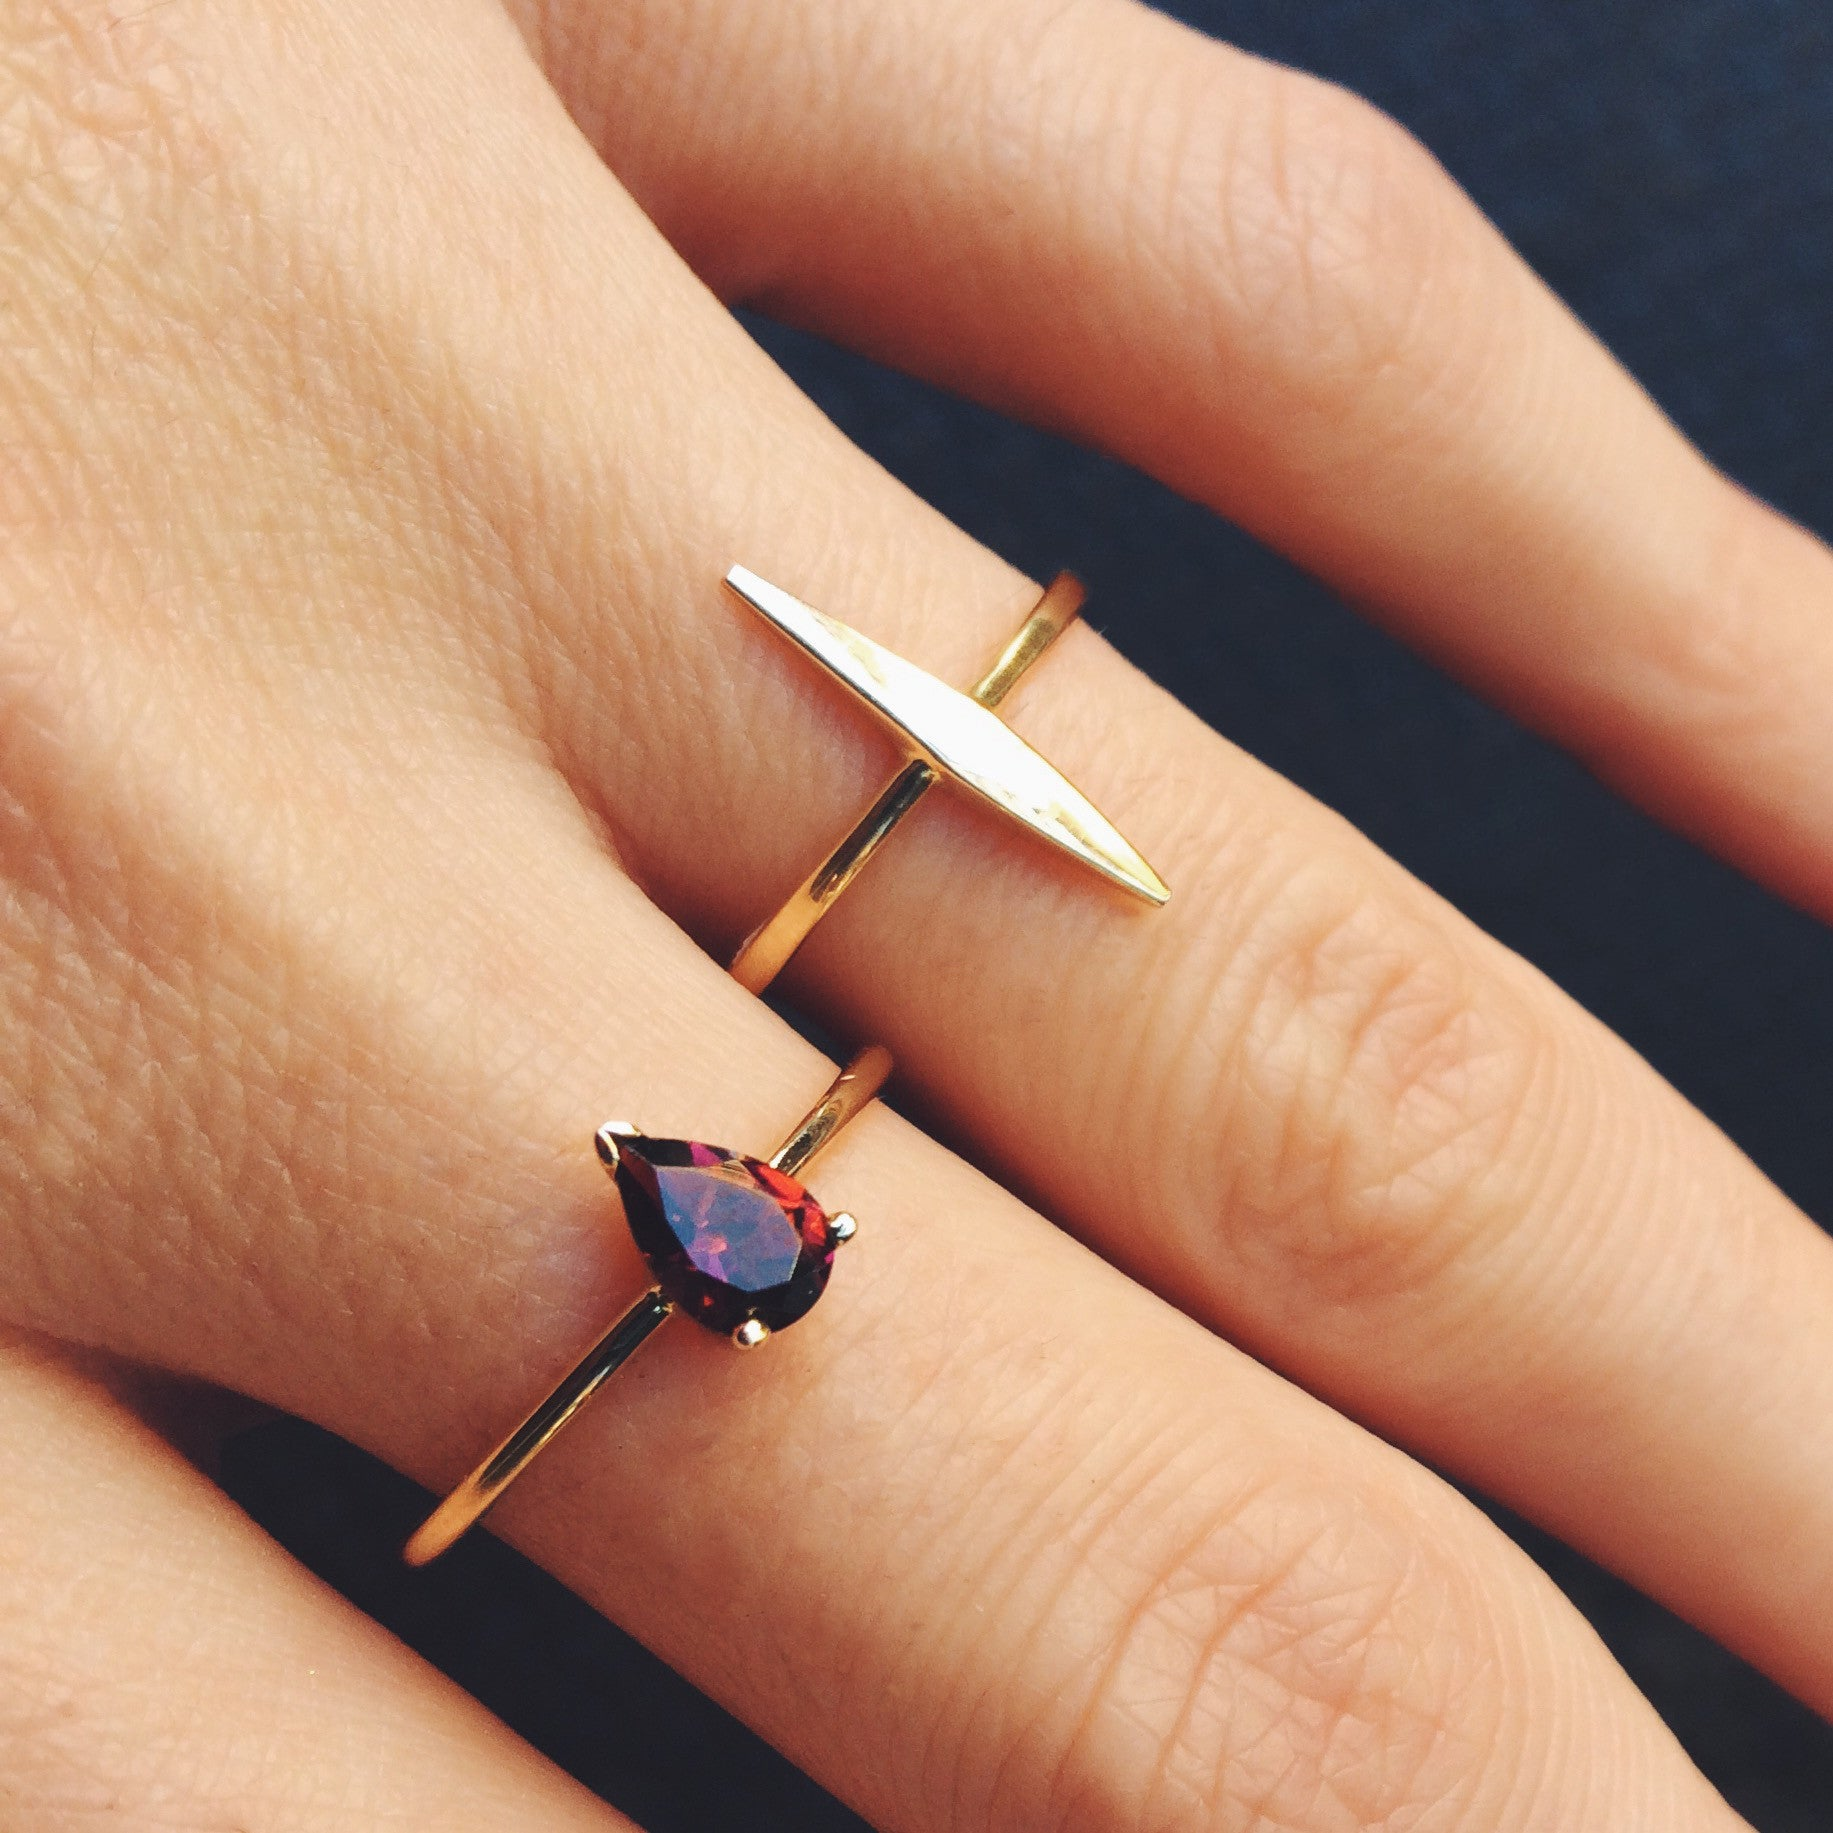 Gold Dart Ring and Tourmaline Ring On Hand